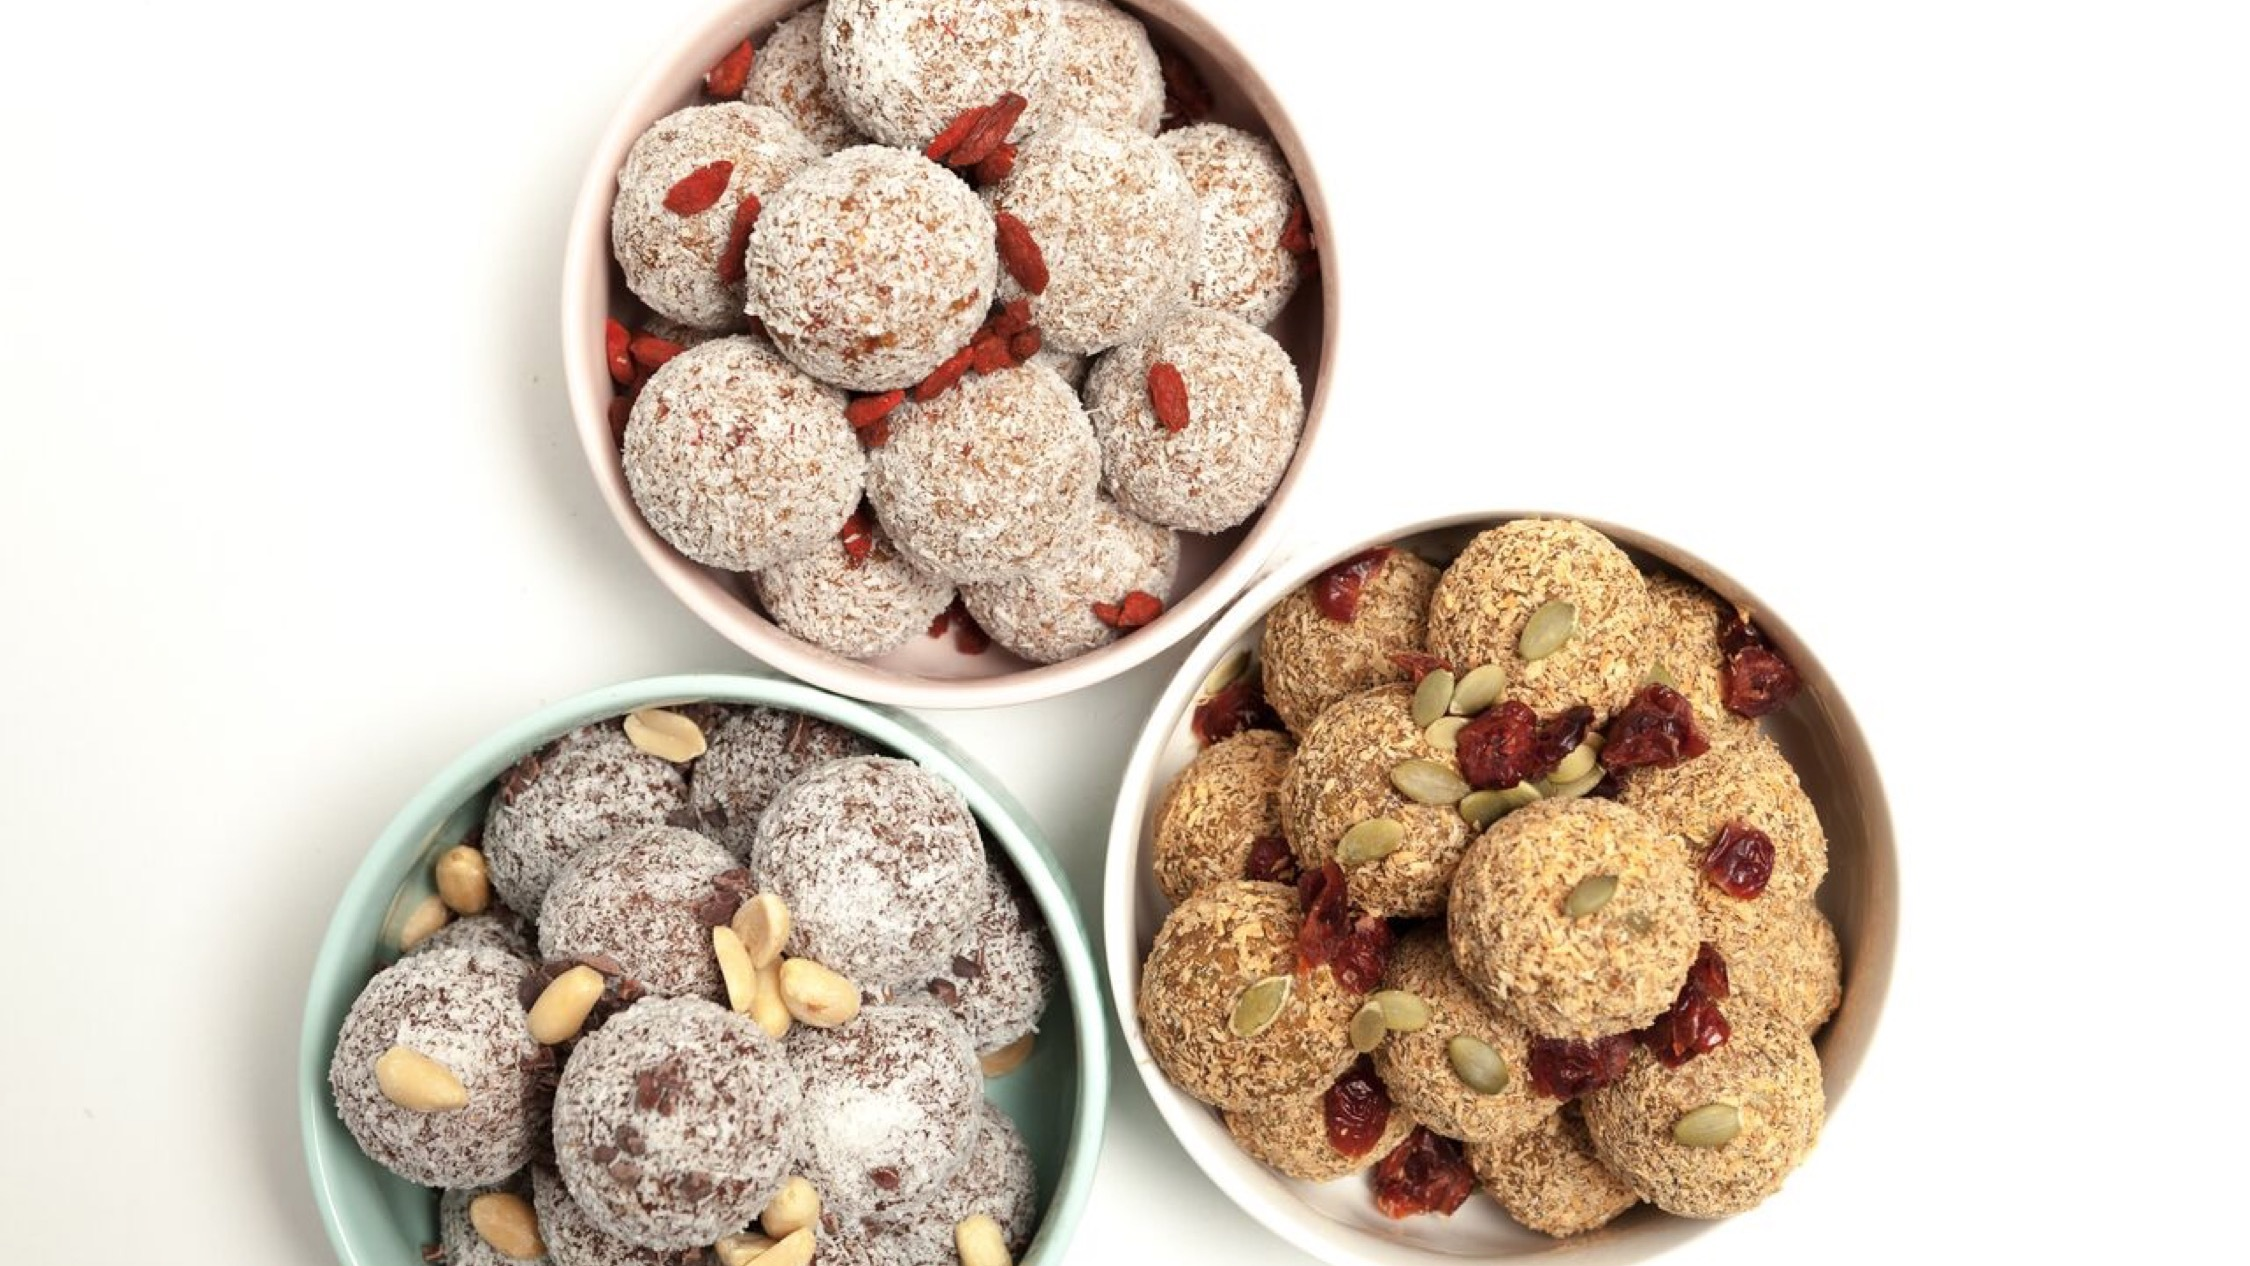 The Health Enthusiast Bliss Balls